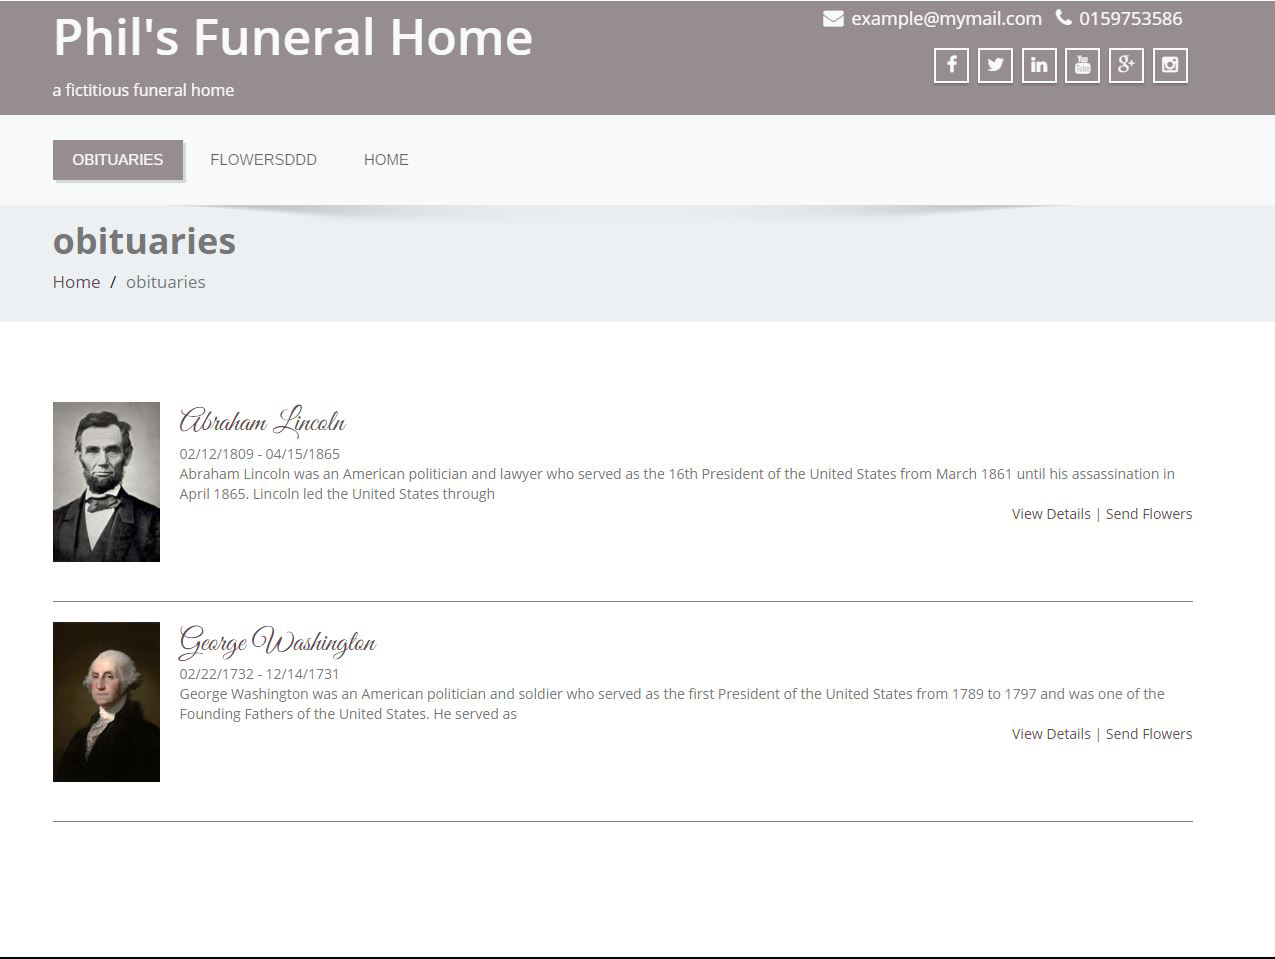 obituary-assistant-by-funeral-home-website-solutions screenshot 7